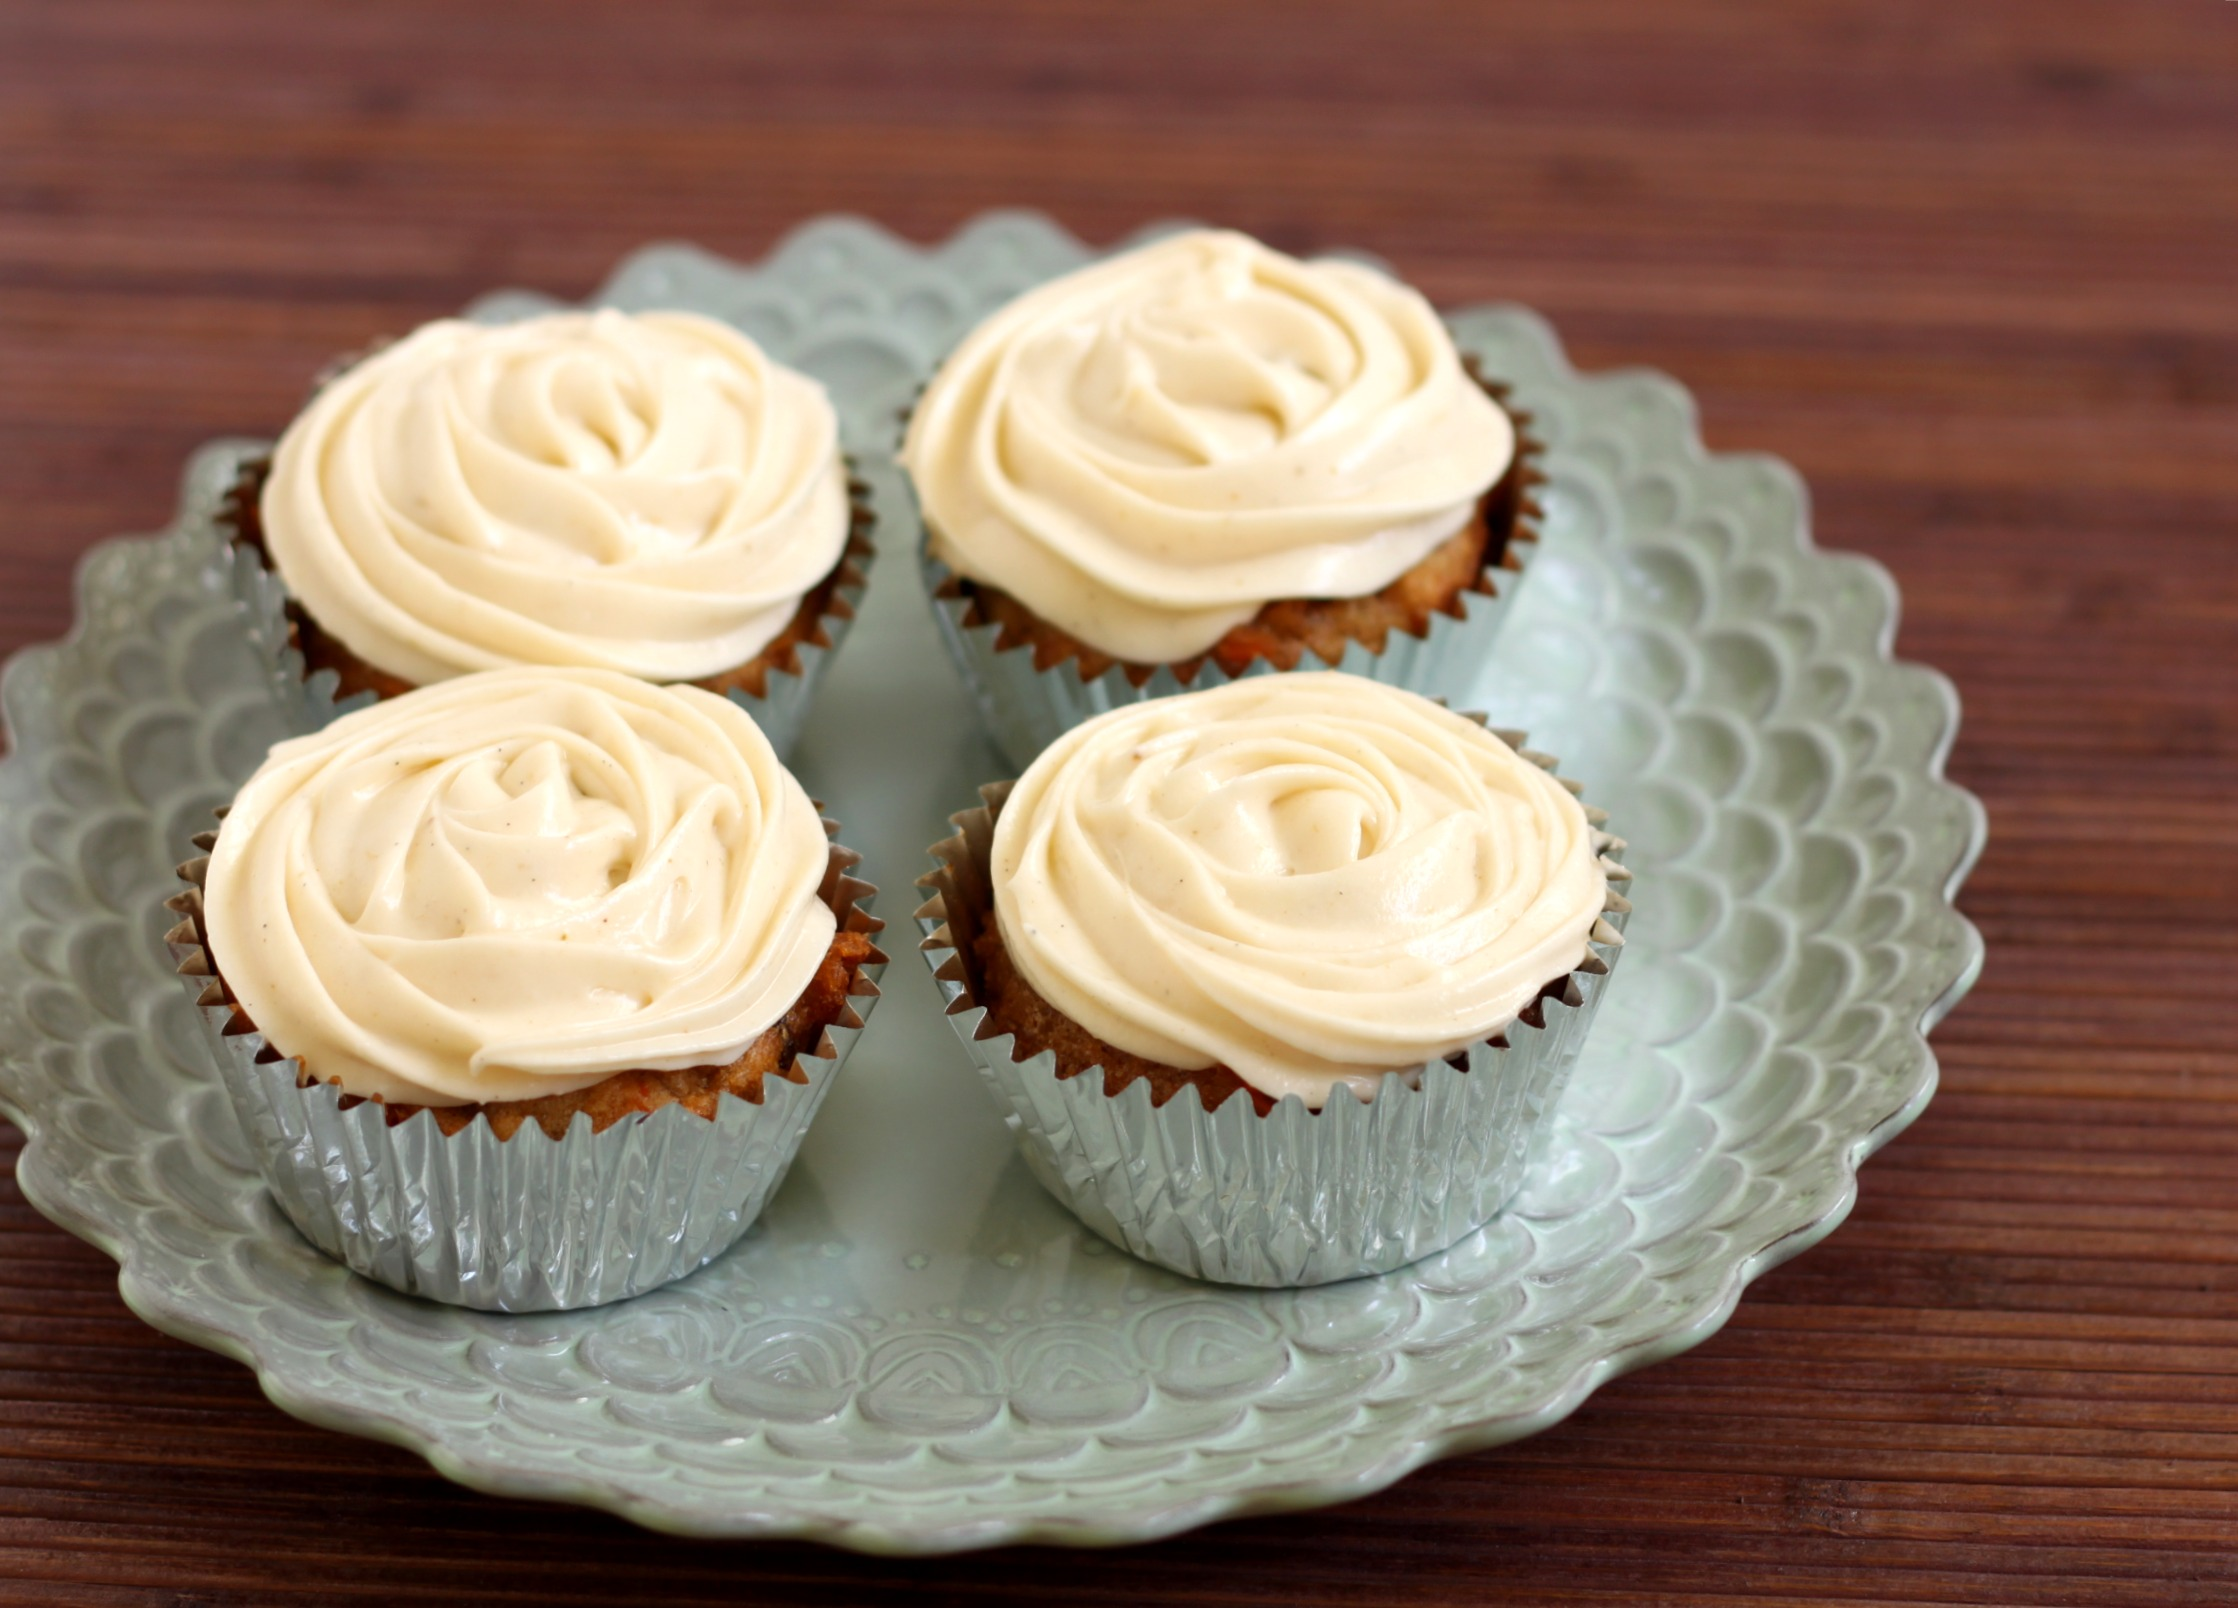 Moist Carrot Cake Cupcakes with Cardamom Cream Cheese Frosting